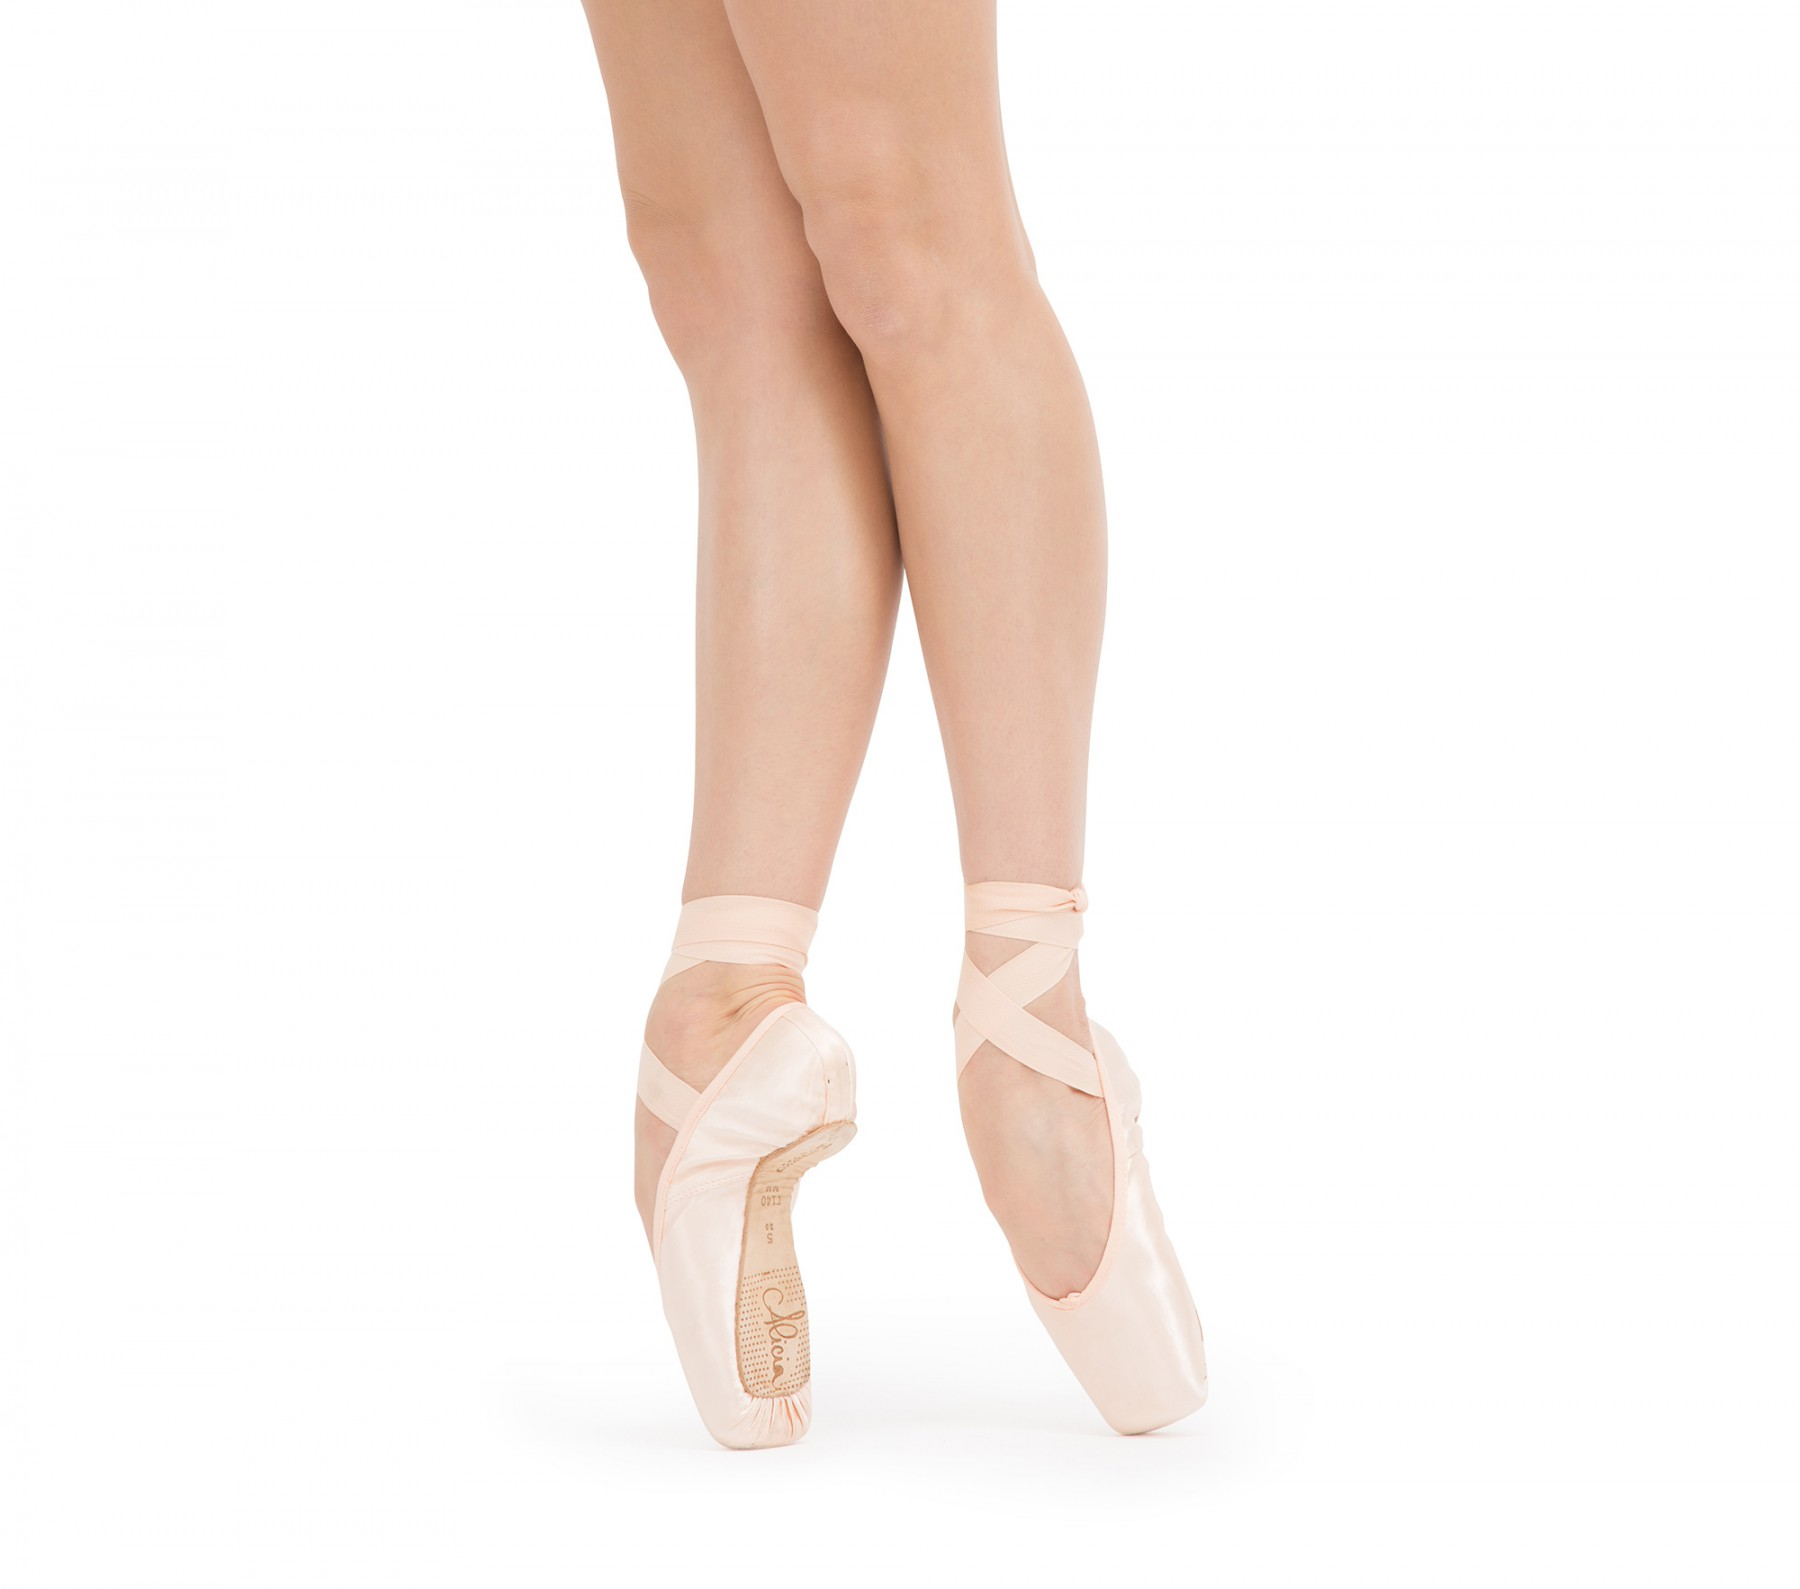 Alicia pointe shoes  Medium box Hard sole